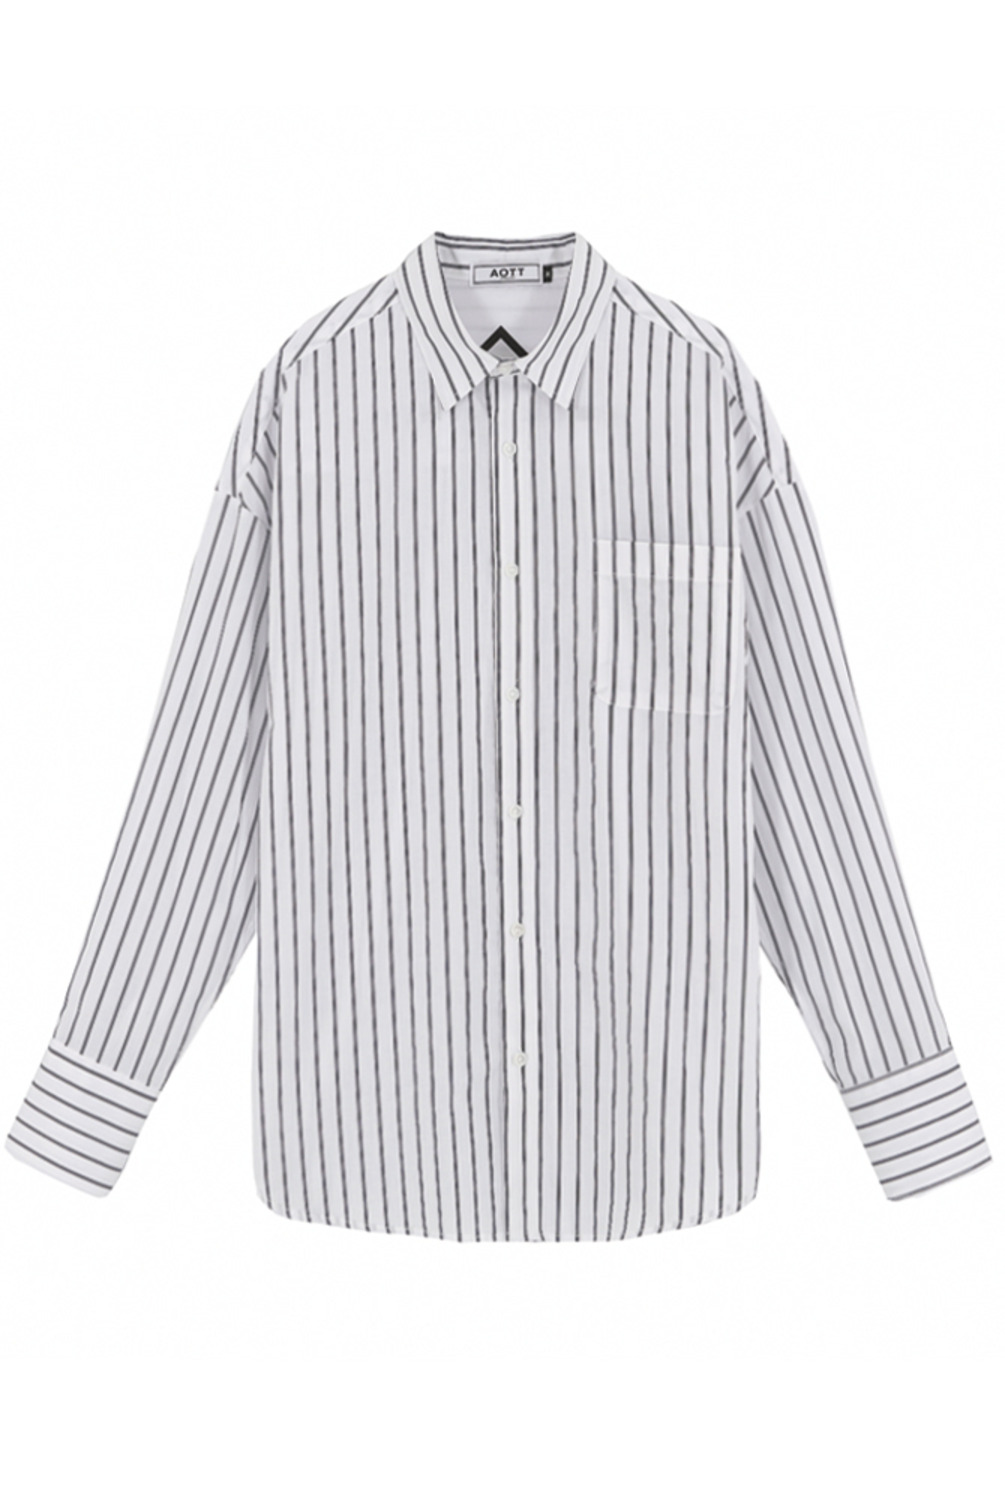 [스크래치상품]UNISEX OVERFIT SLIM STRIPE SHIRTS WHITE